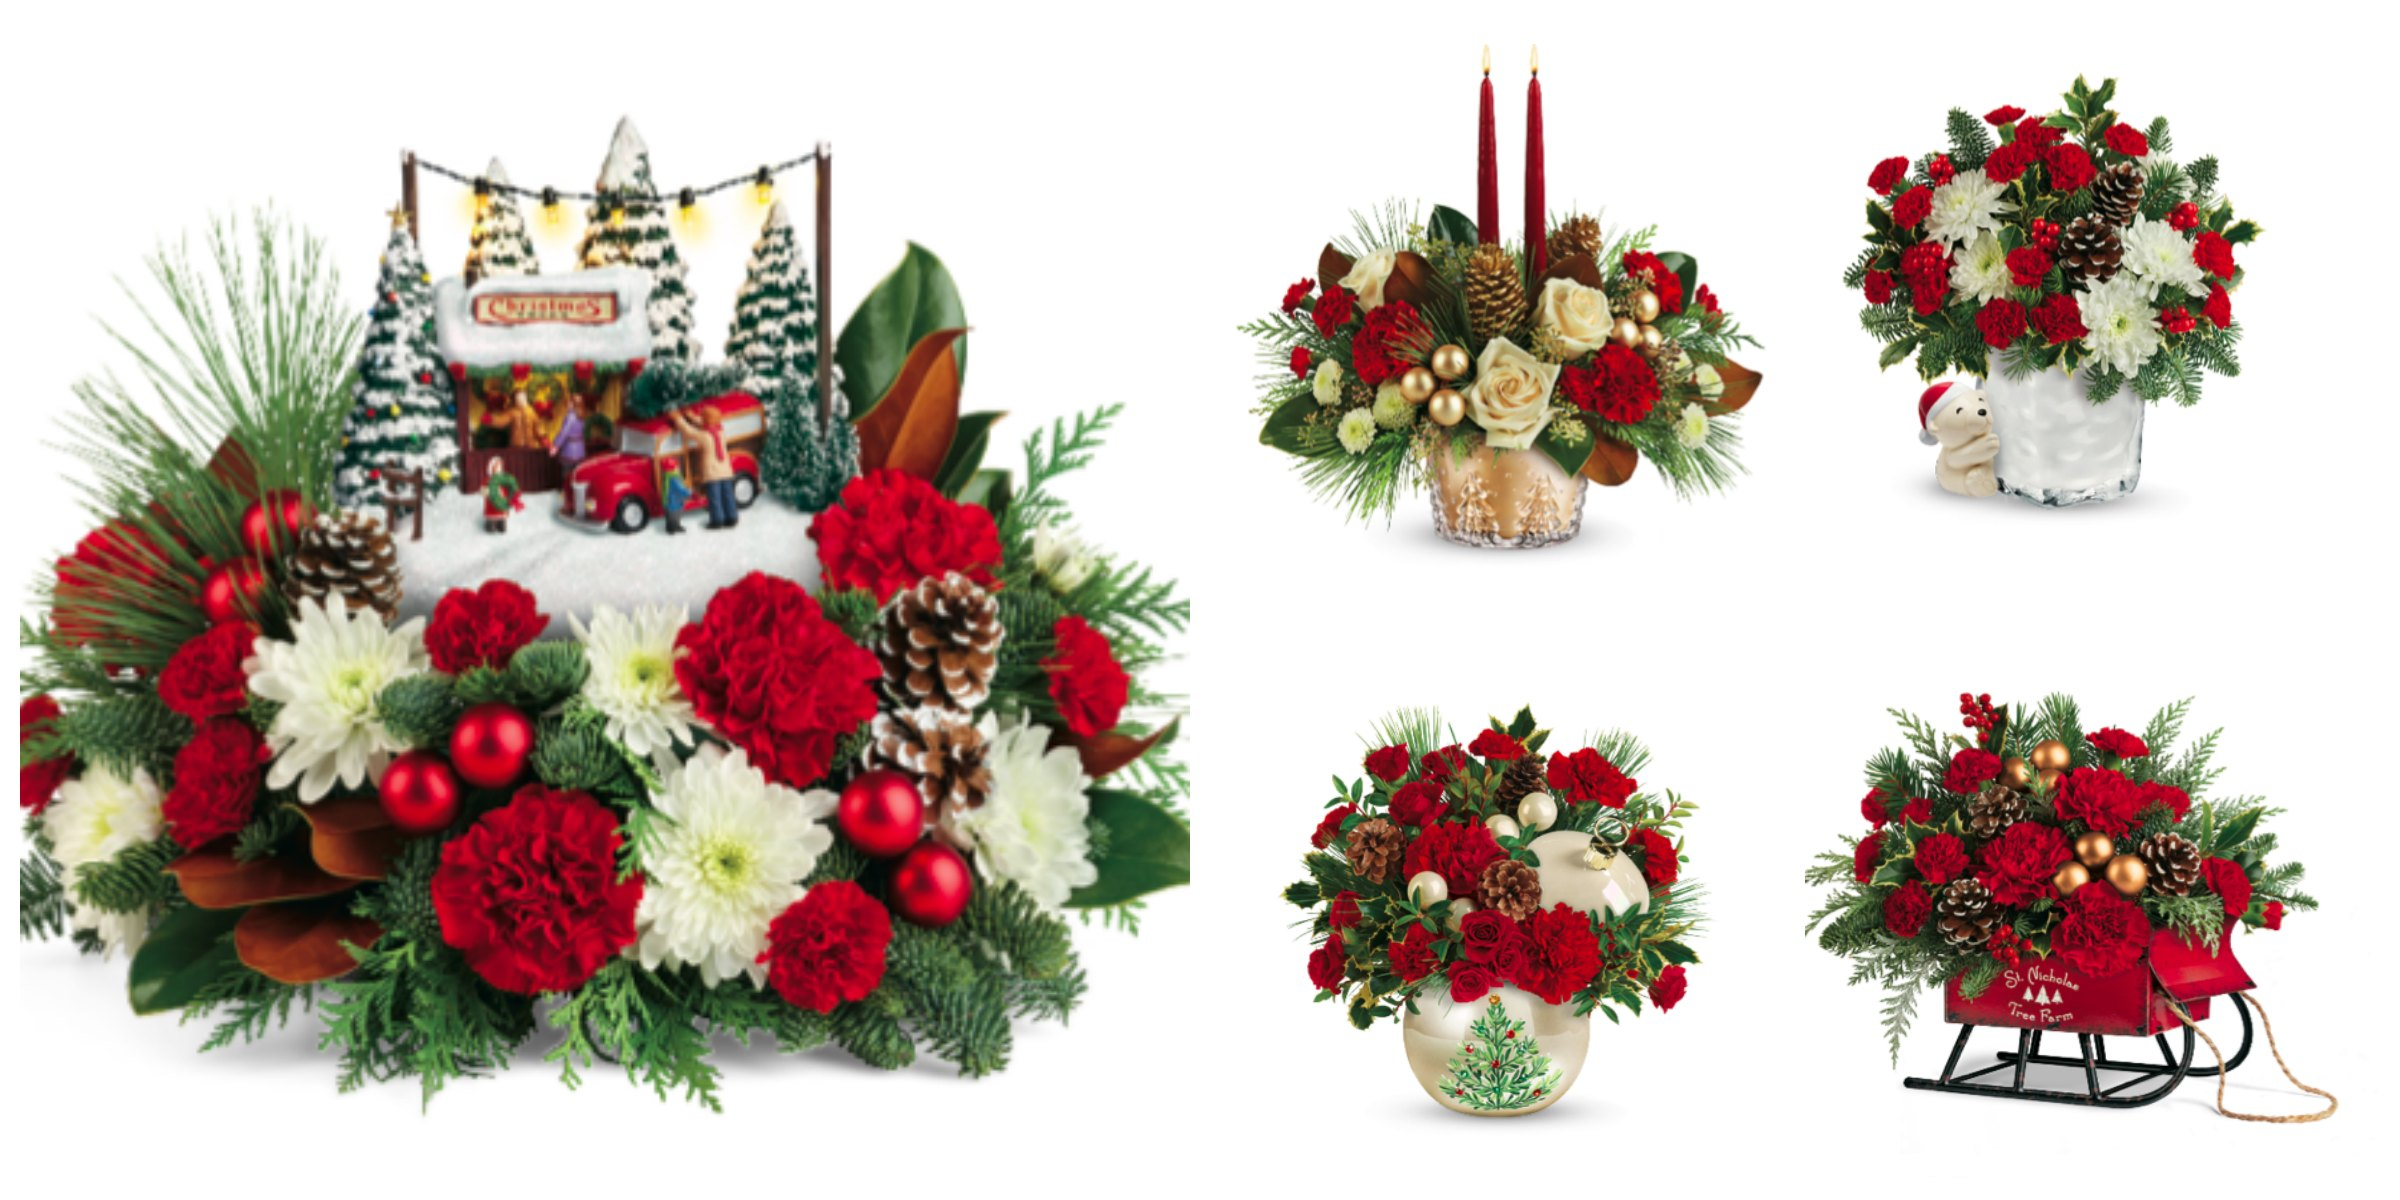 Special arrangement with mom - 3 3